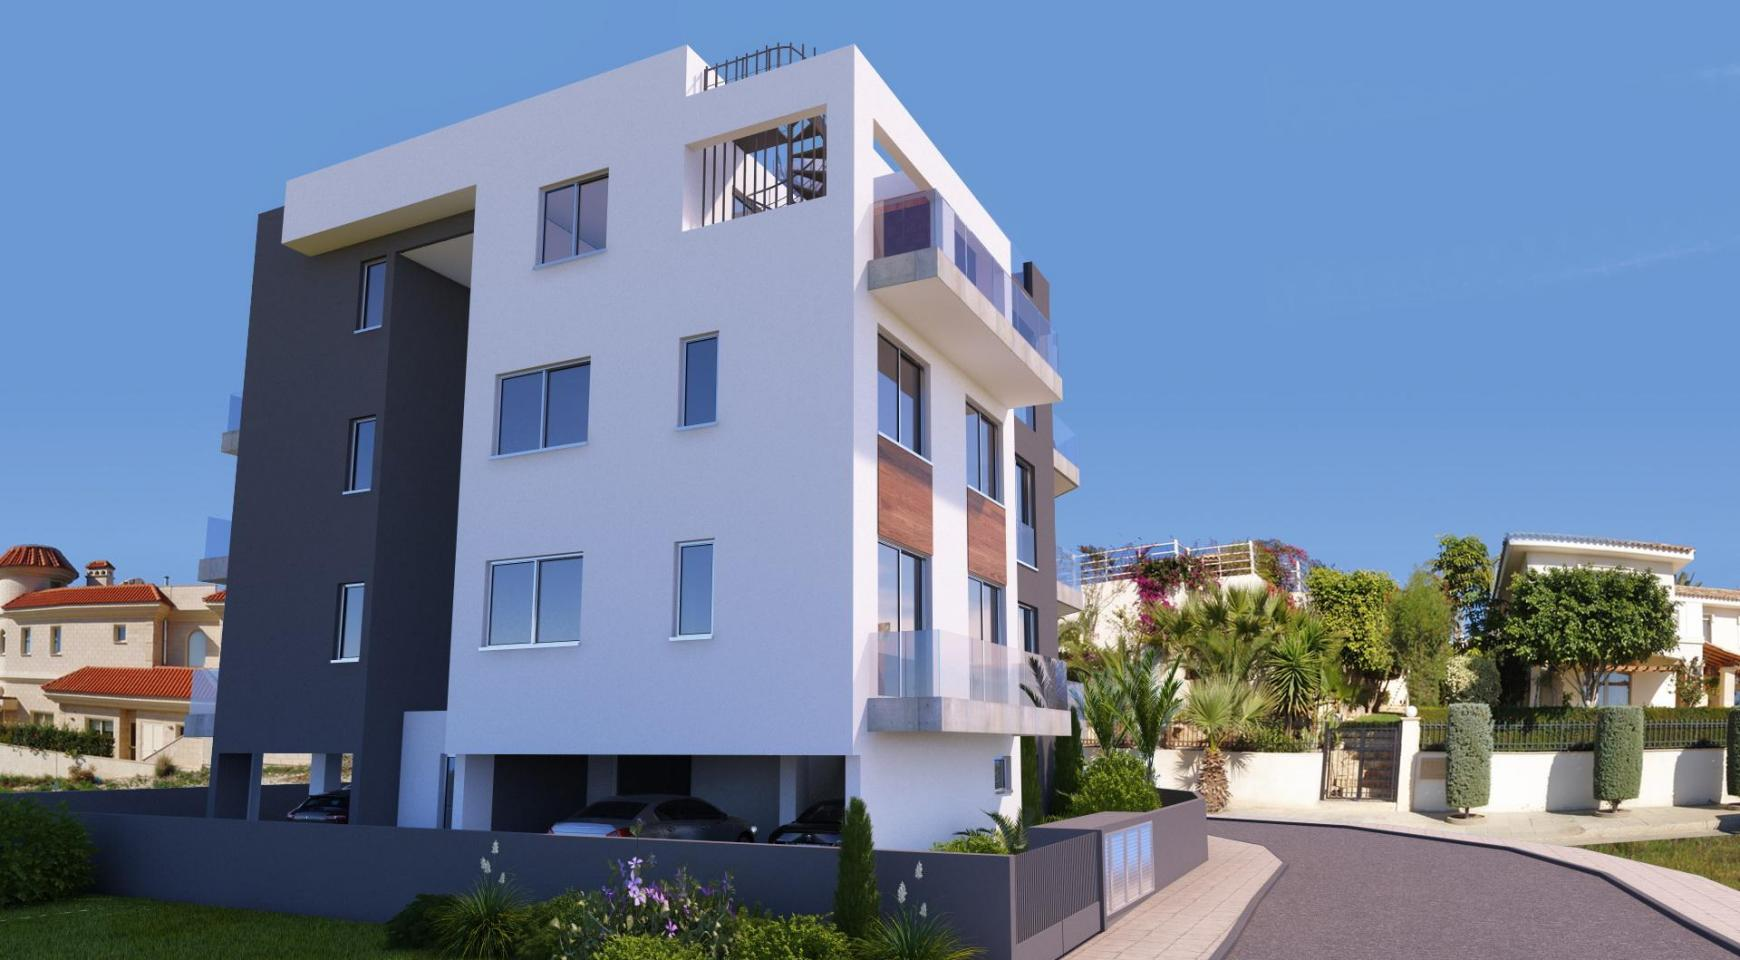 New 3 Bedroom Apartment in a Contemporay Building in Potamos Germasogeia - 5